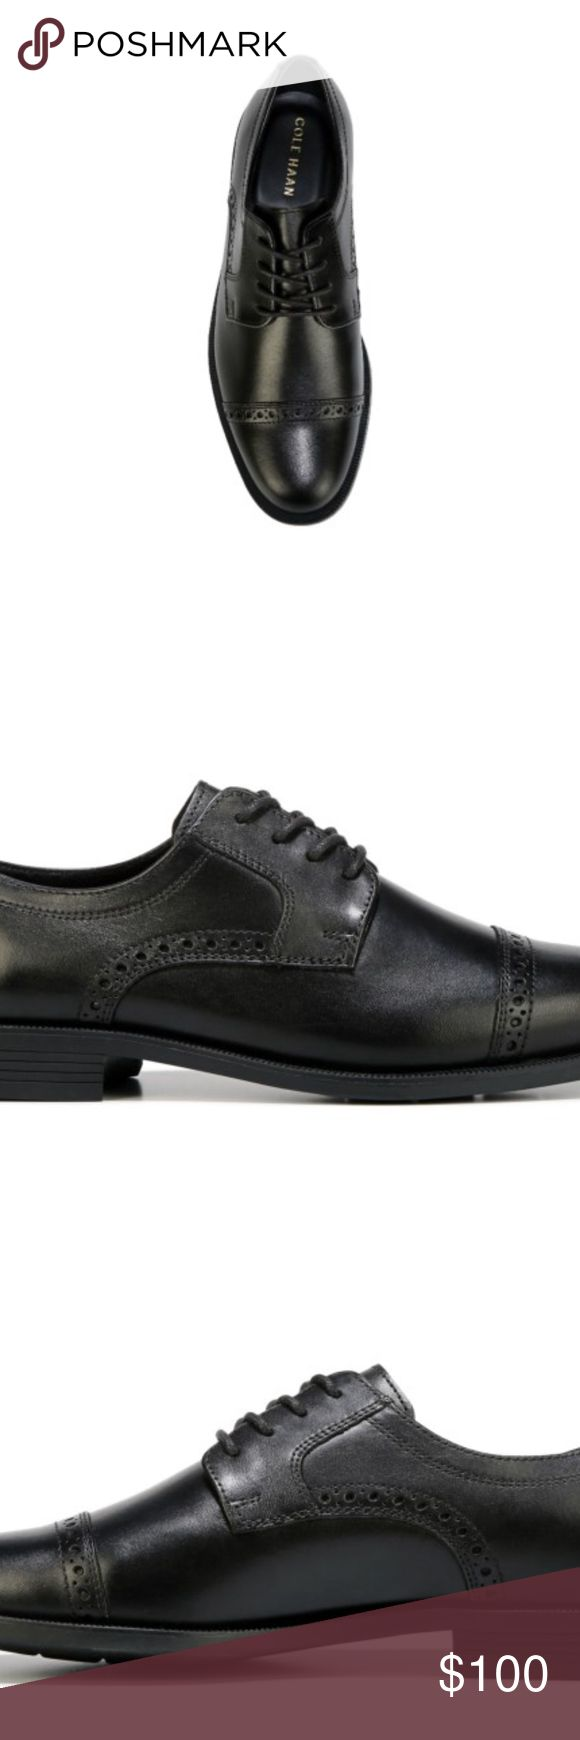 New Cole Haan Dustin Cap Brogue II Dress Shoes Cole Haan Dustin Cap Brogue II Dress Shoes  Dress shoes  New in Box  Available in 9 or 11.5  Black  Leather  Check out my other items for sale in my store! Cole Haan Shoes Oxfords & Derbys